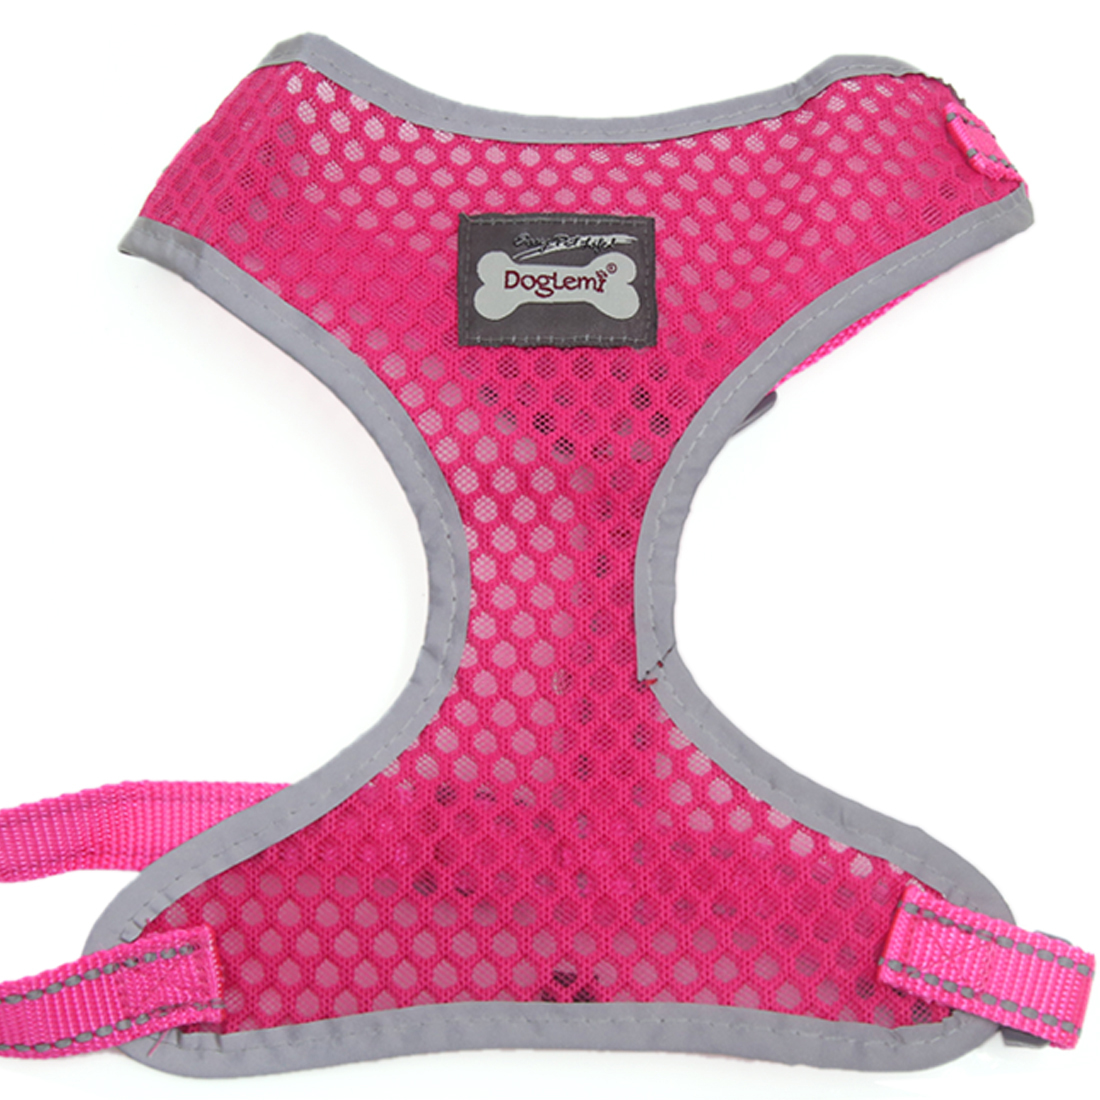 Comfort Control Dog Harness Adjustable Breathable Soft Air Mesh Puppy Harnesses Walk Collar Reflective Vest Fuchsia XL